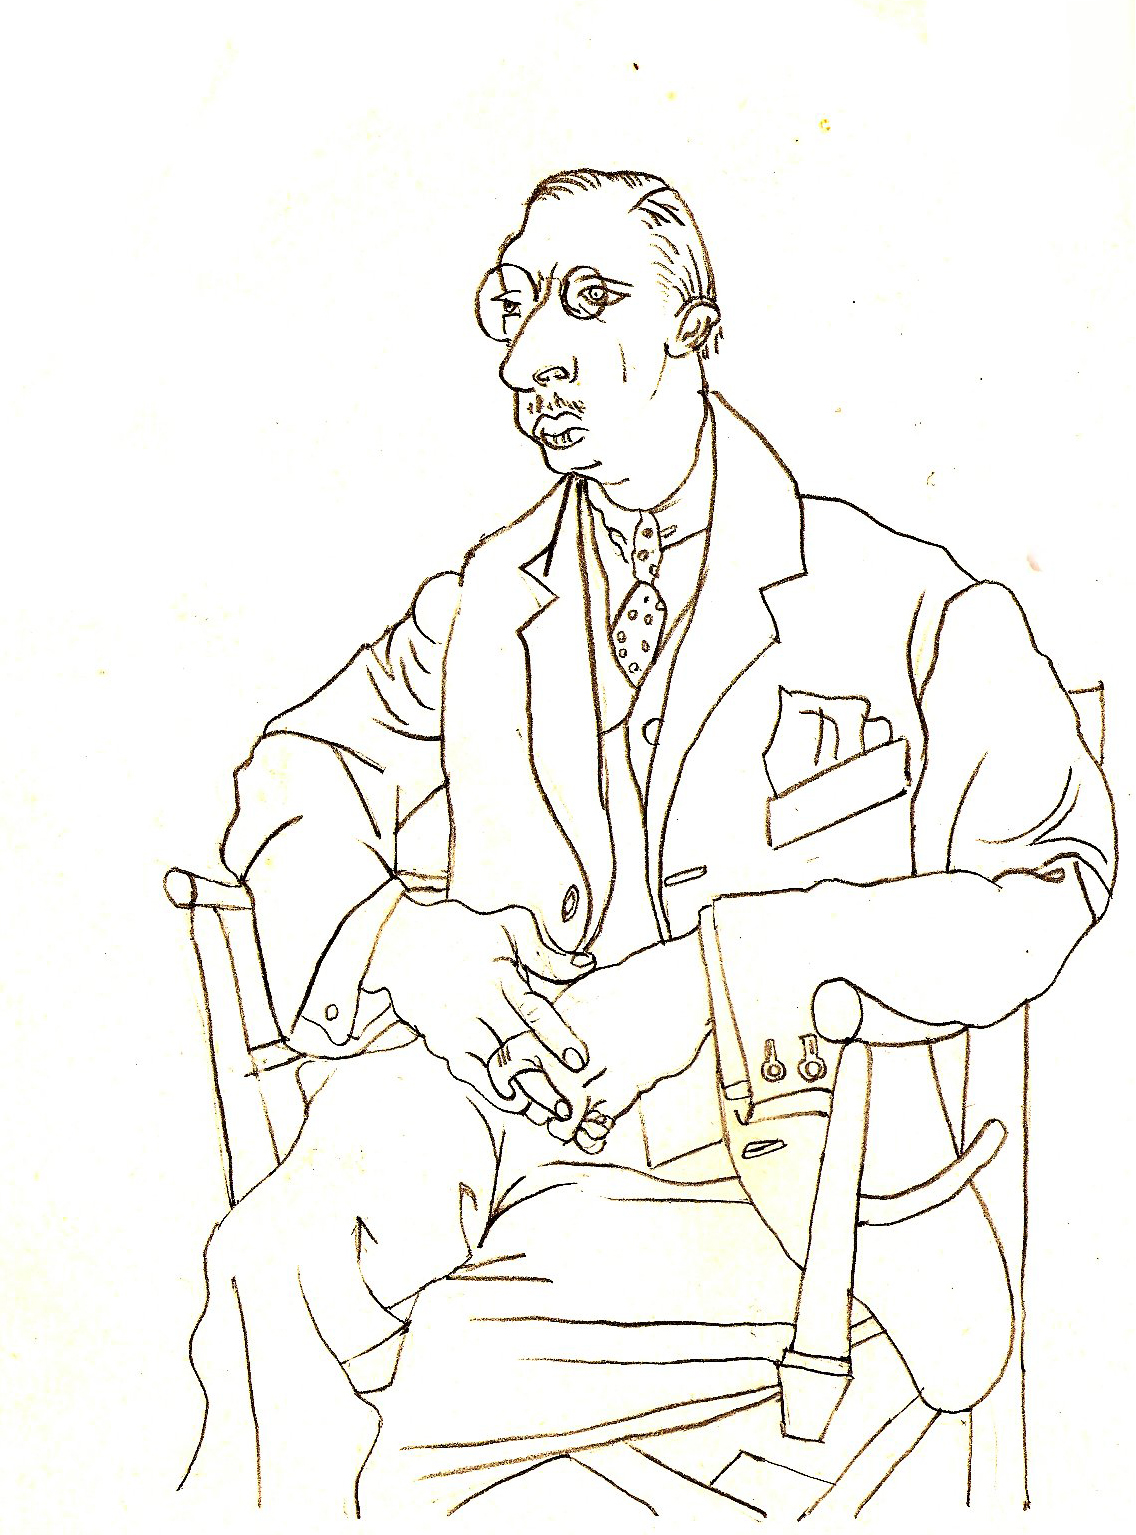 Stravinsky, drawn by Picasso in 1920.